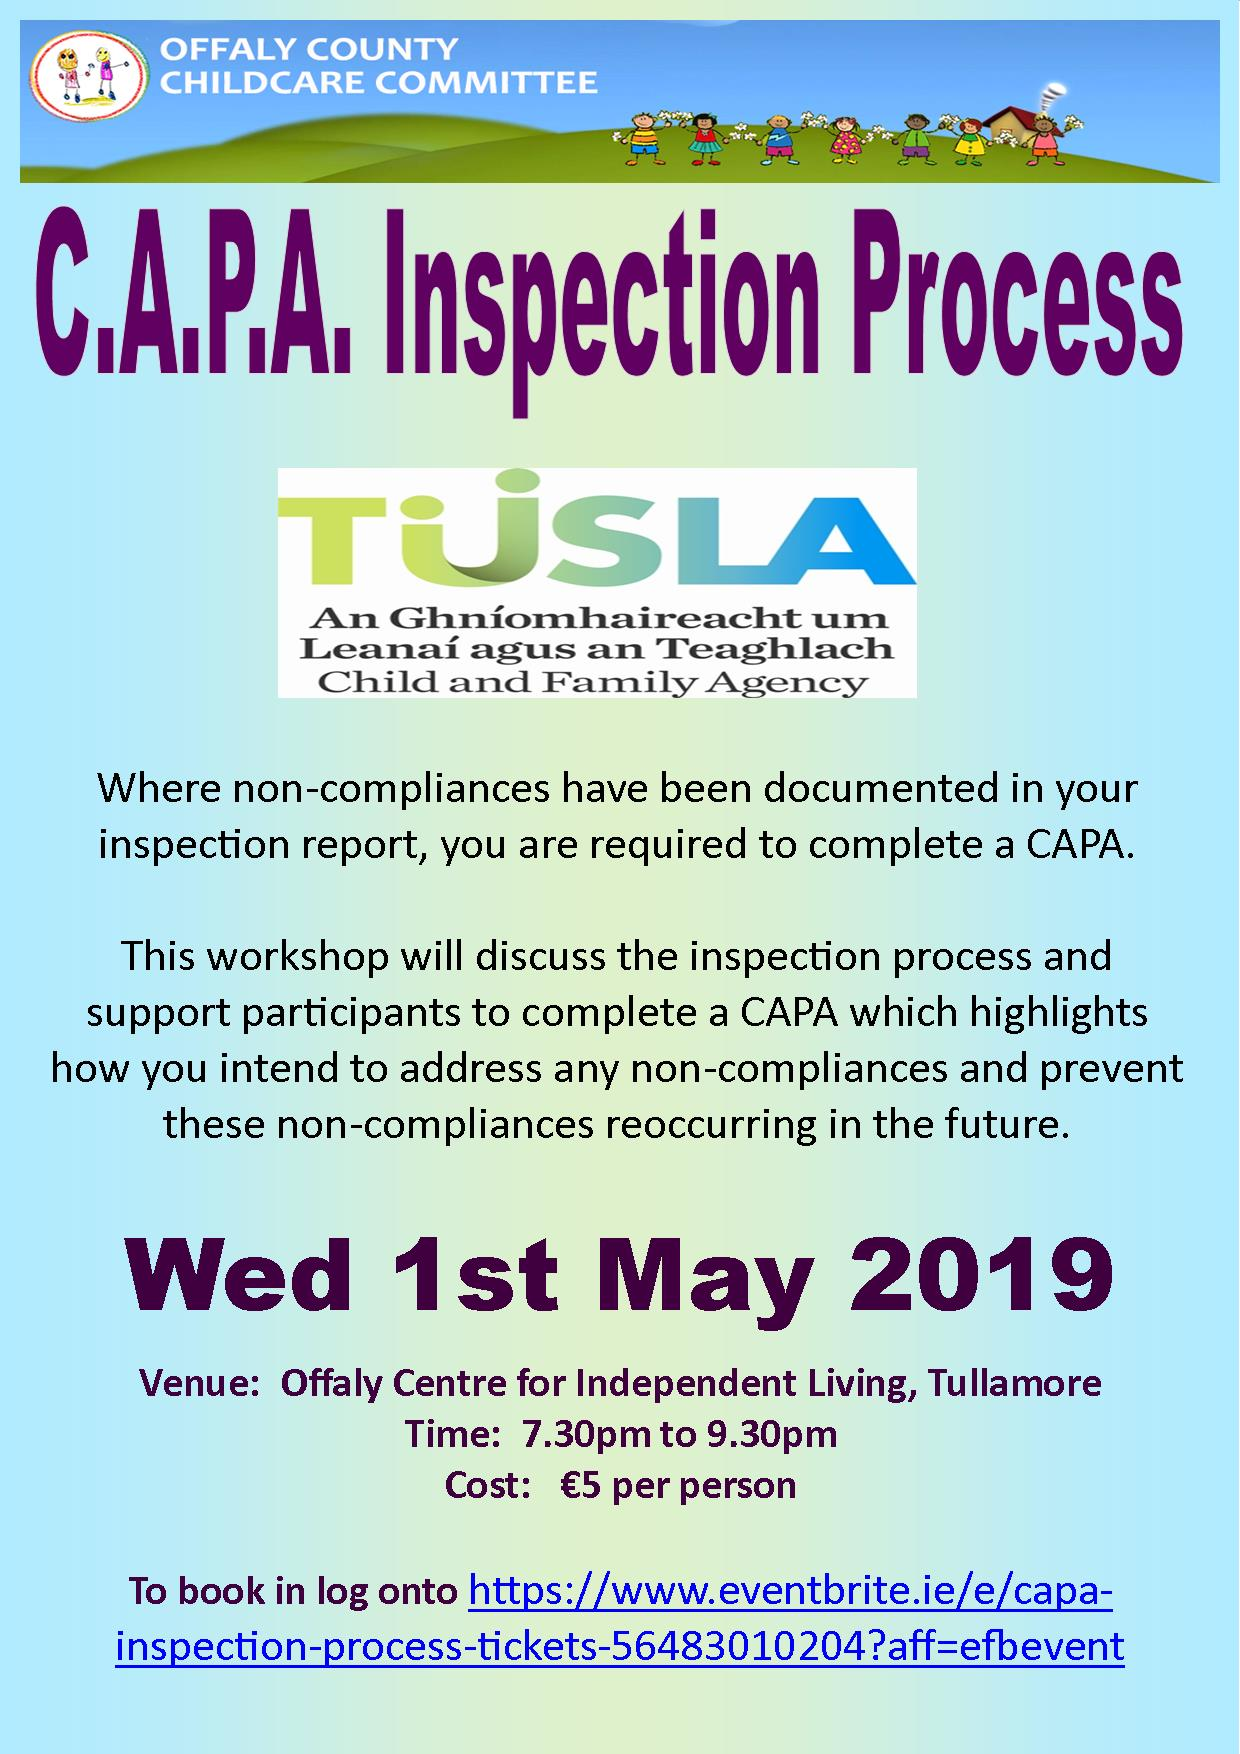 CAPA inspection process poster